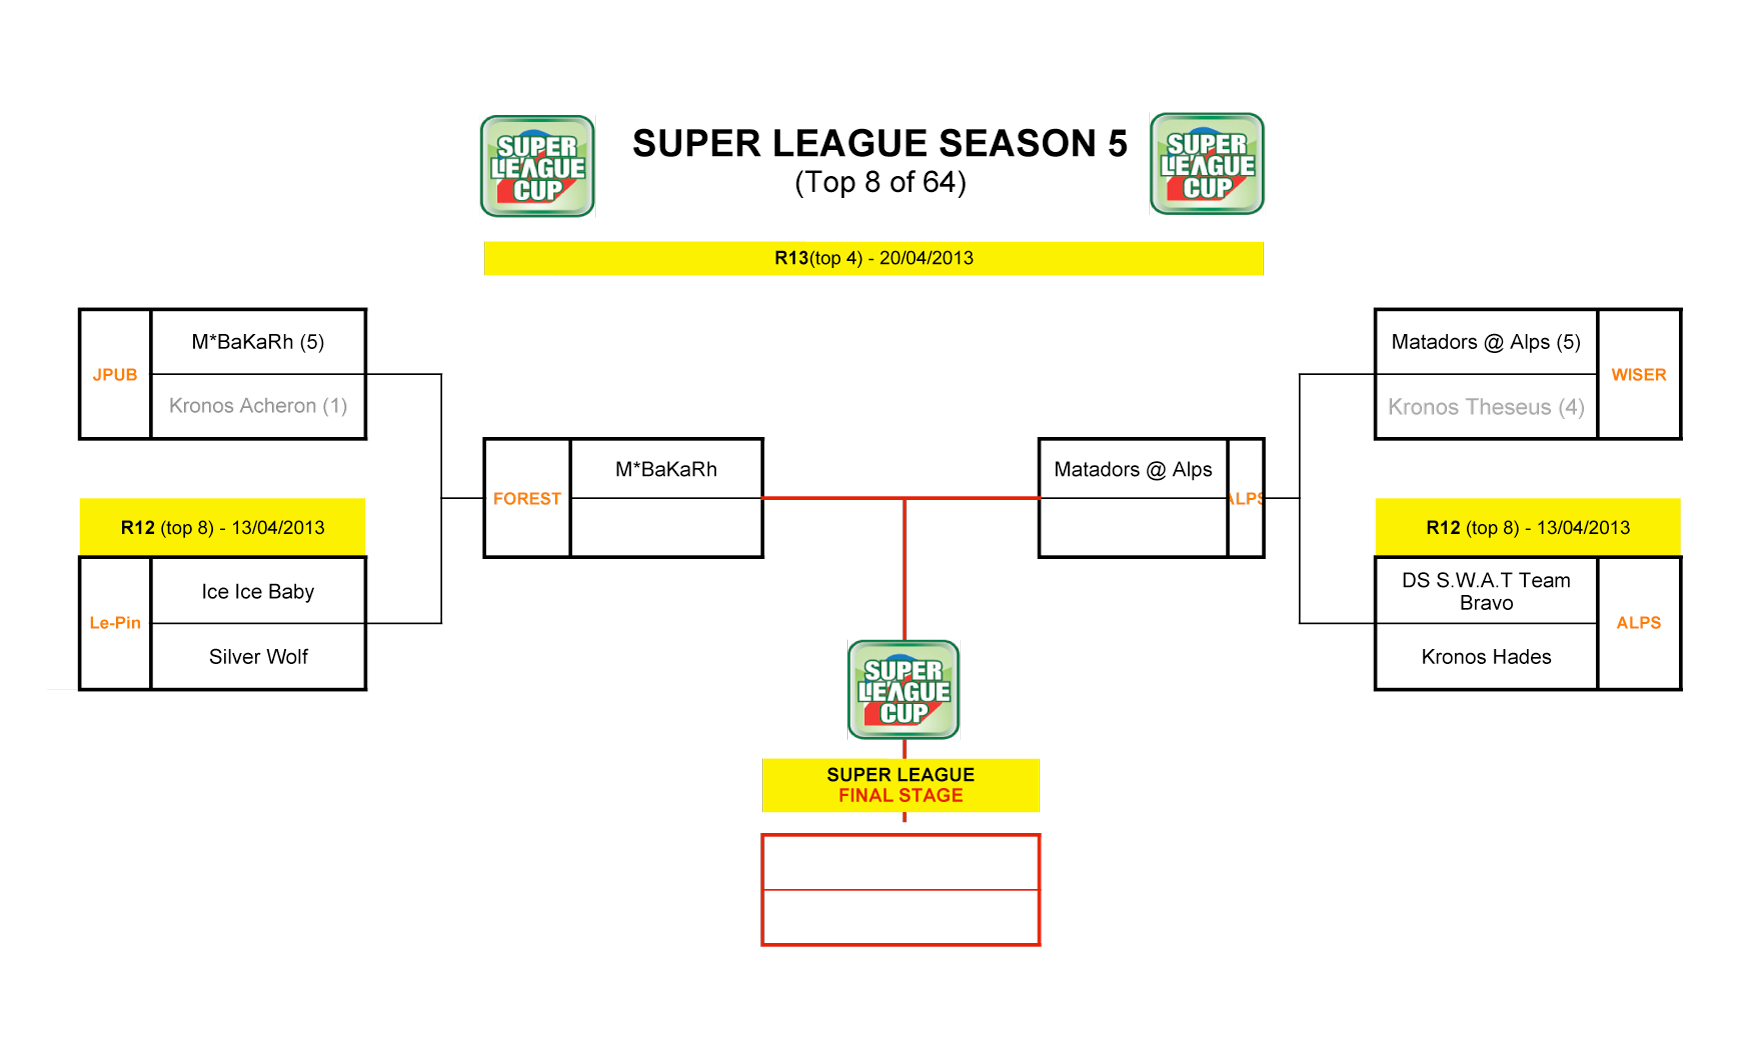 SUPER LEAGUE CUP SEASON V Top8 Schedule & Results